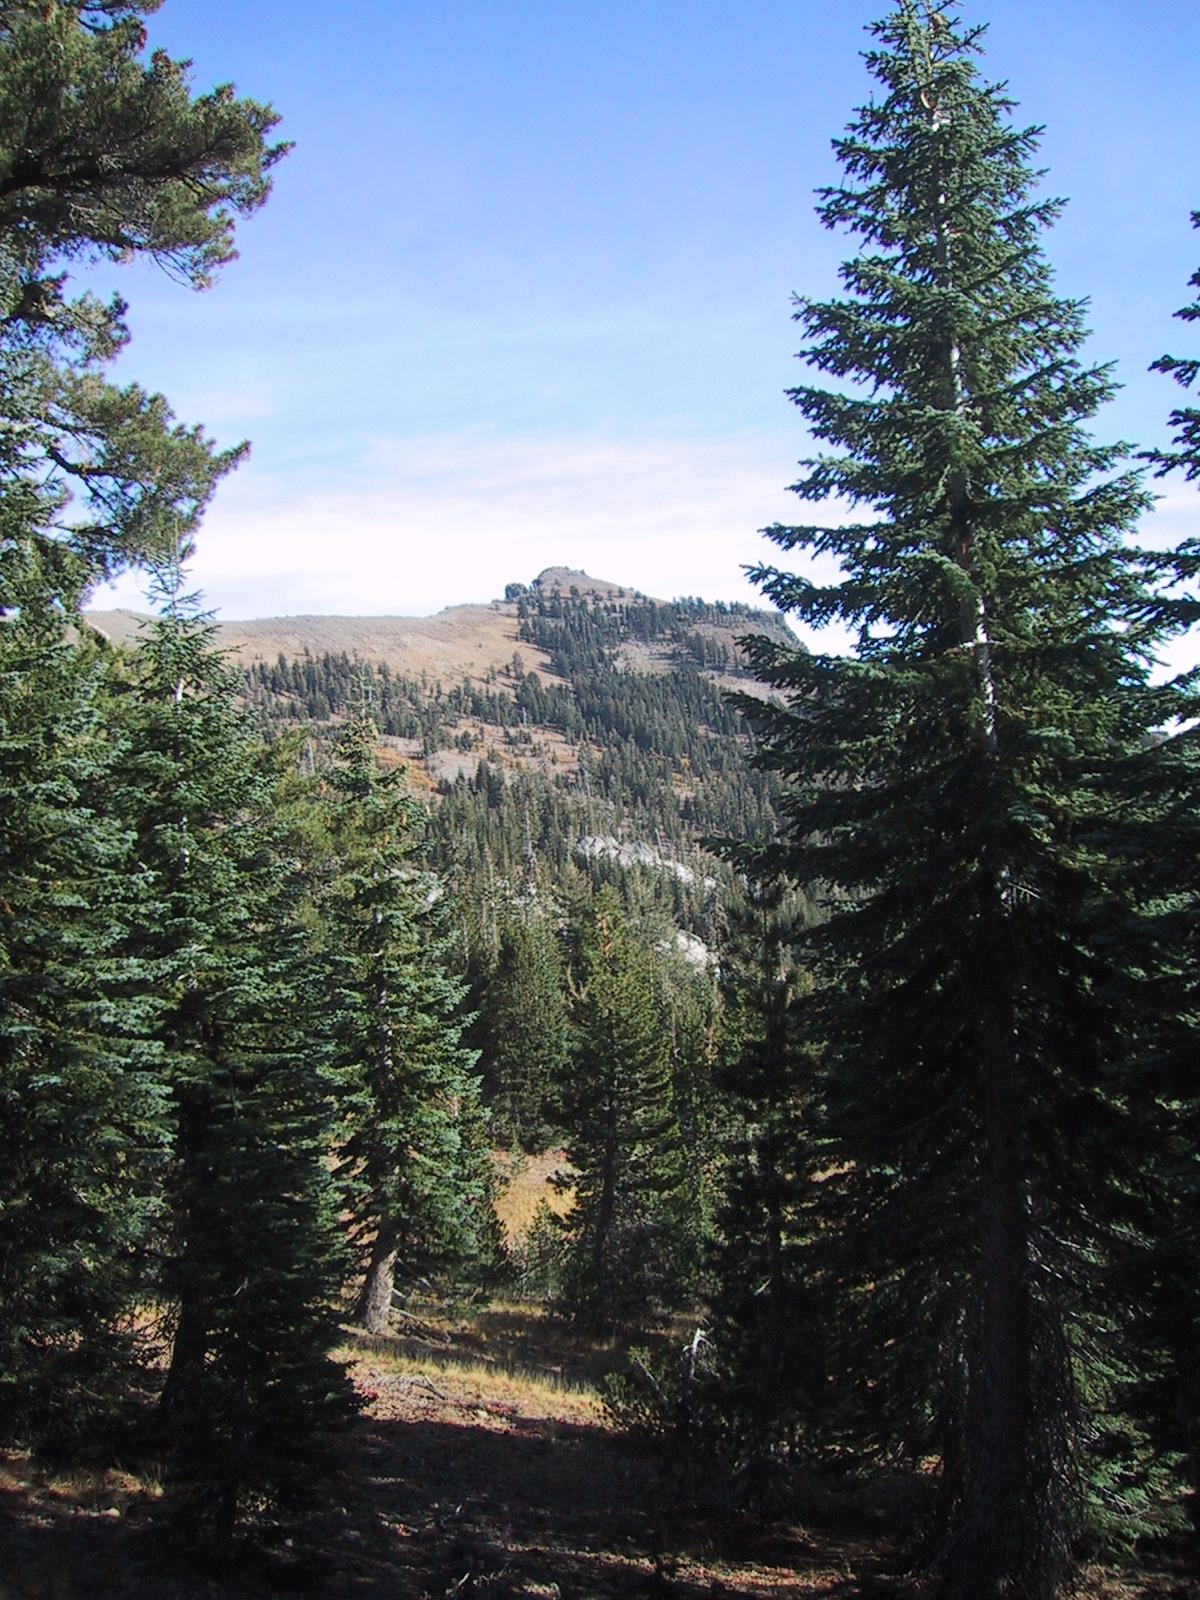 [Castle Peak with trees in foreground]